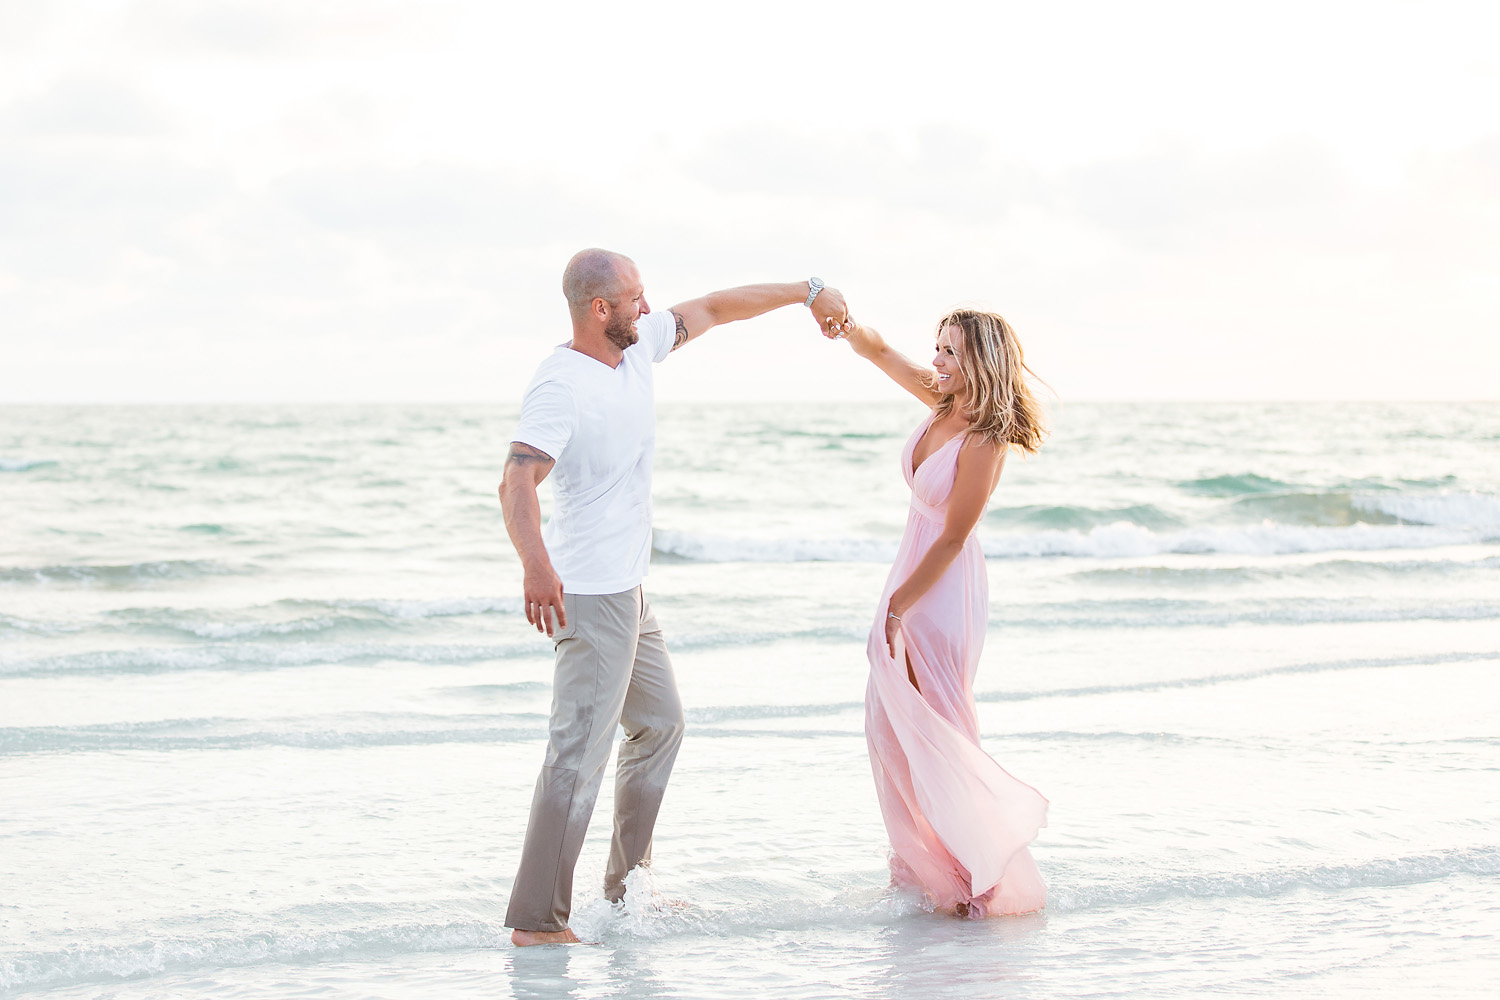 Siesta Key Beach engagement, sarasota engagement, Katelyn Prisco Photography, Southwest florida engagement, Siesta engagement, sarasota photographer, engagement photography sarasota